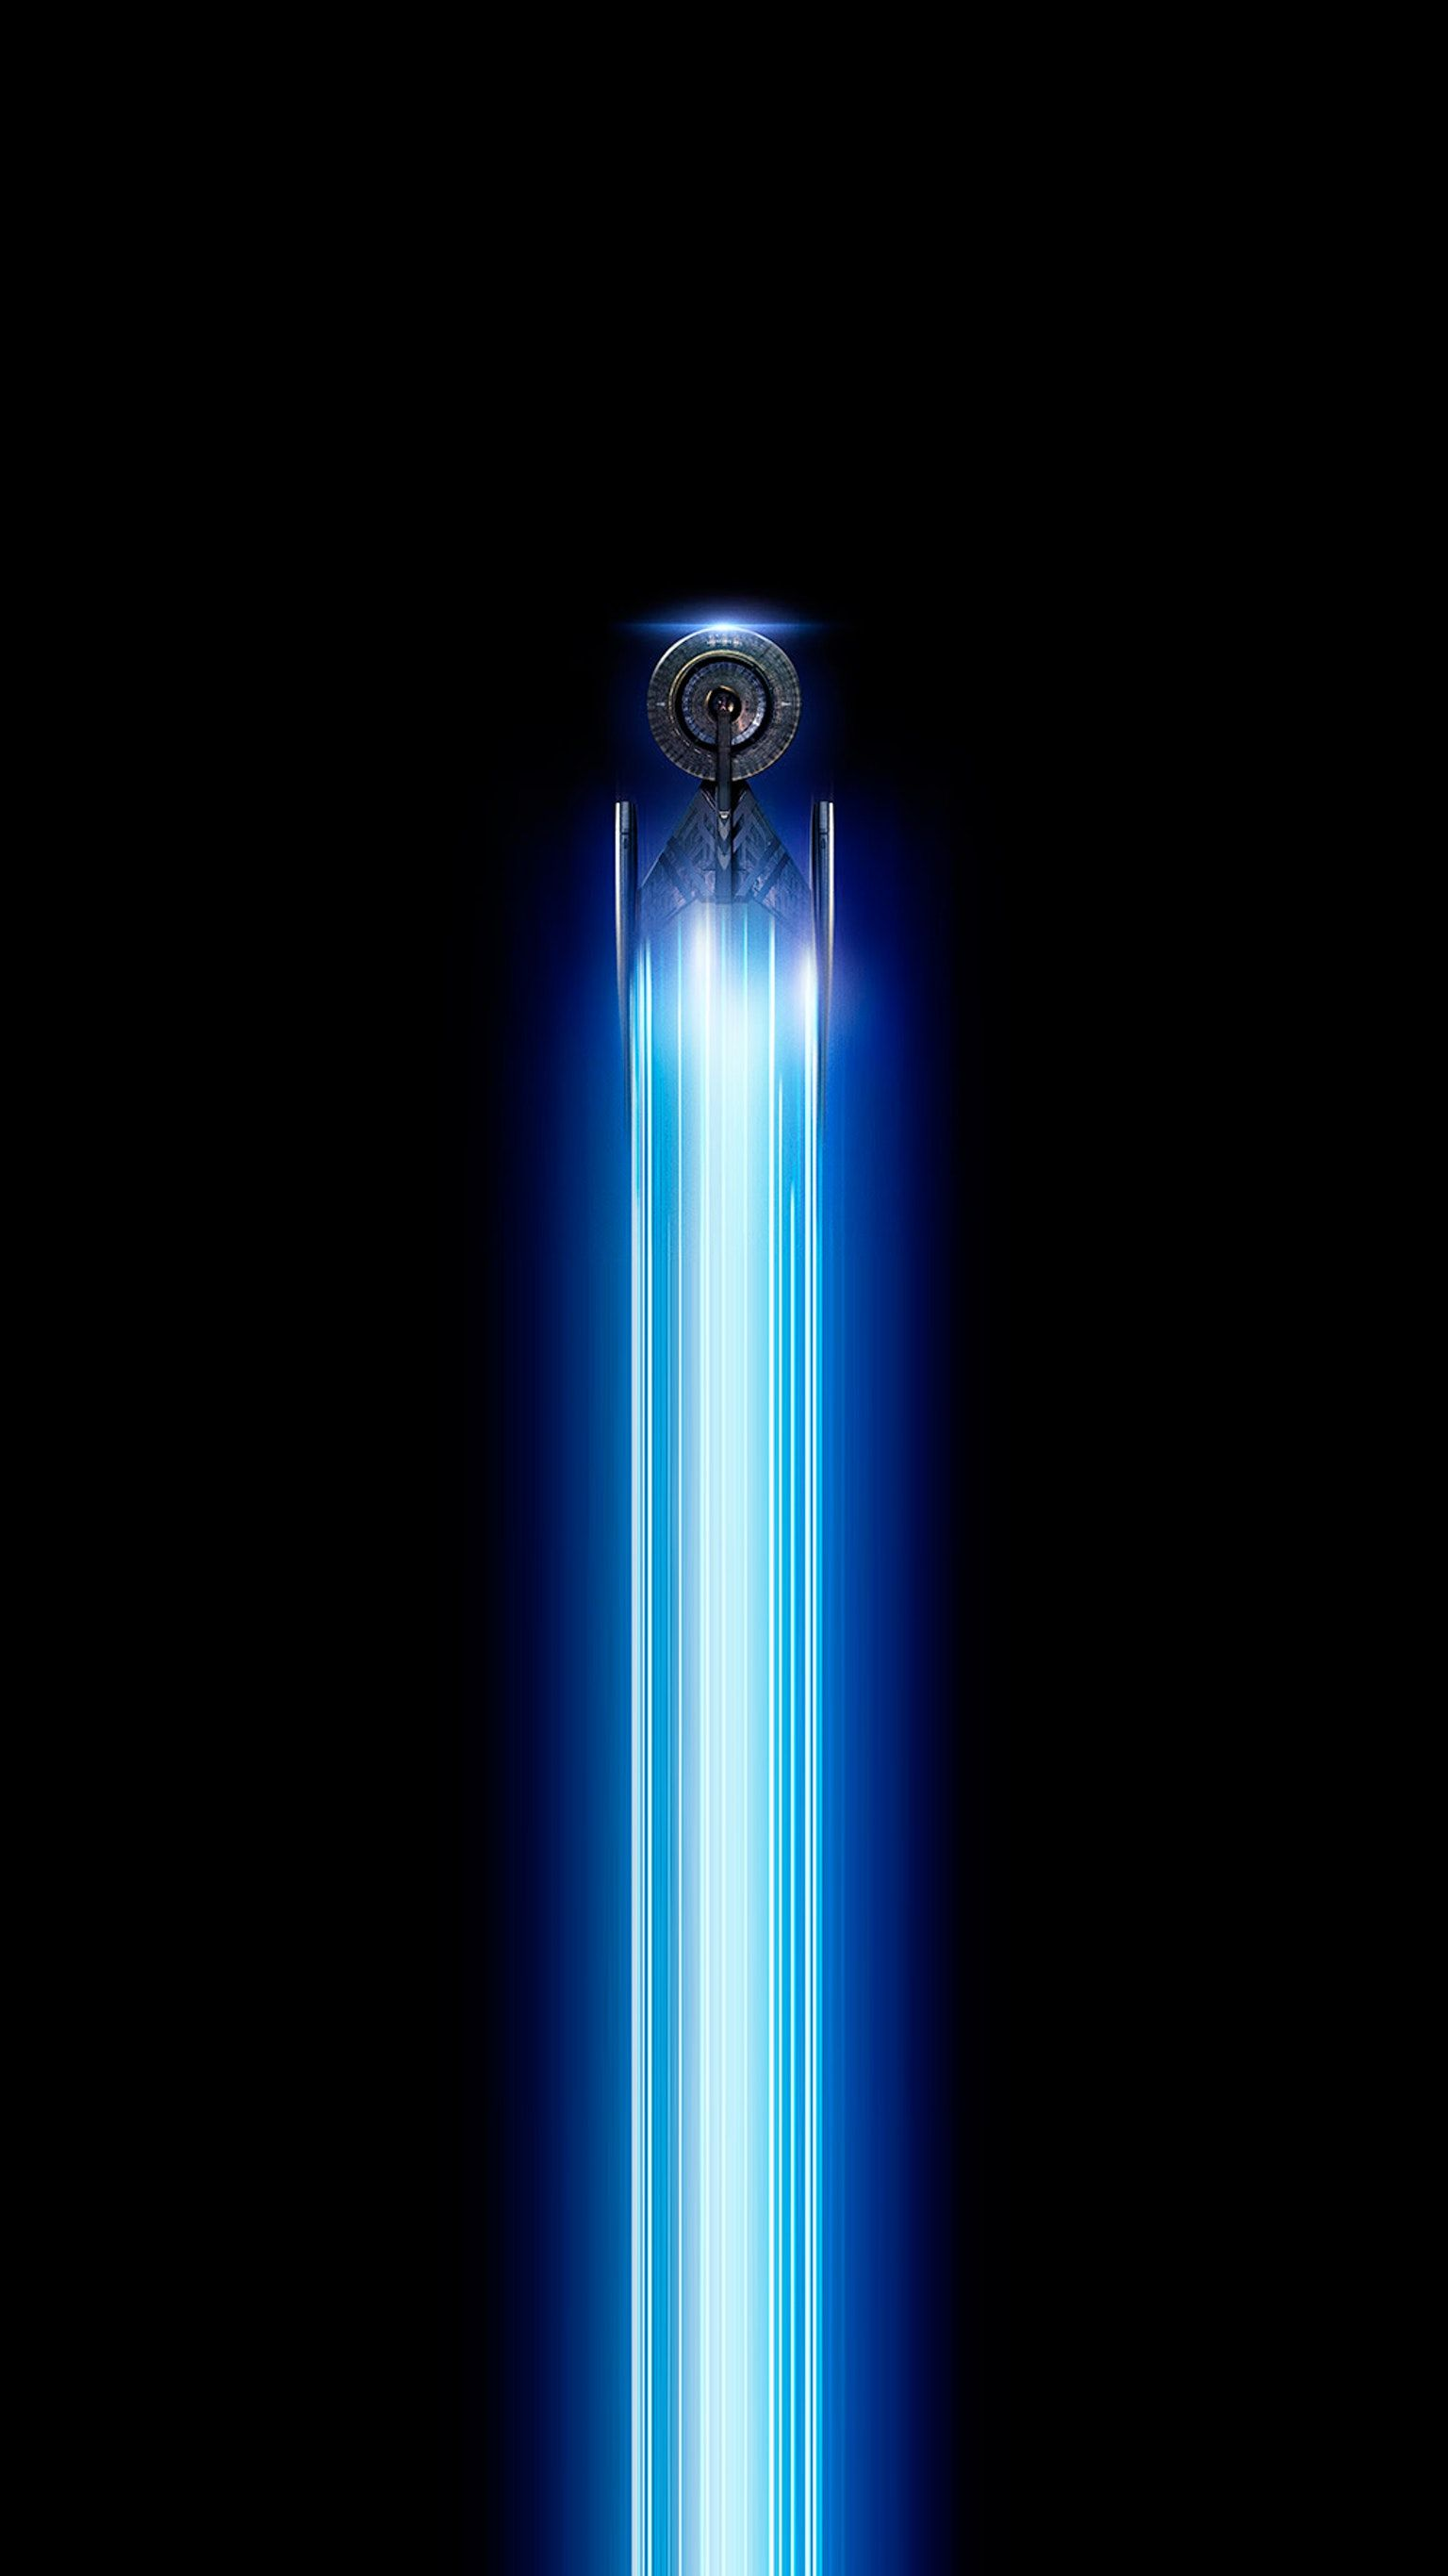 Star Trek: Discovery Phone Wallpaper | Moviemania